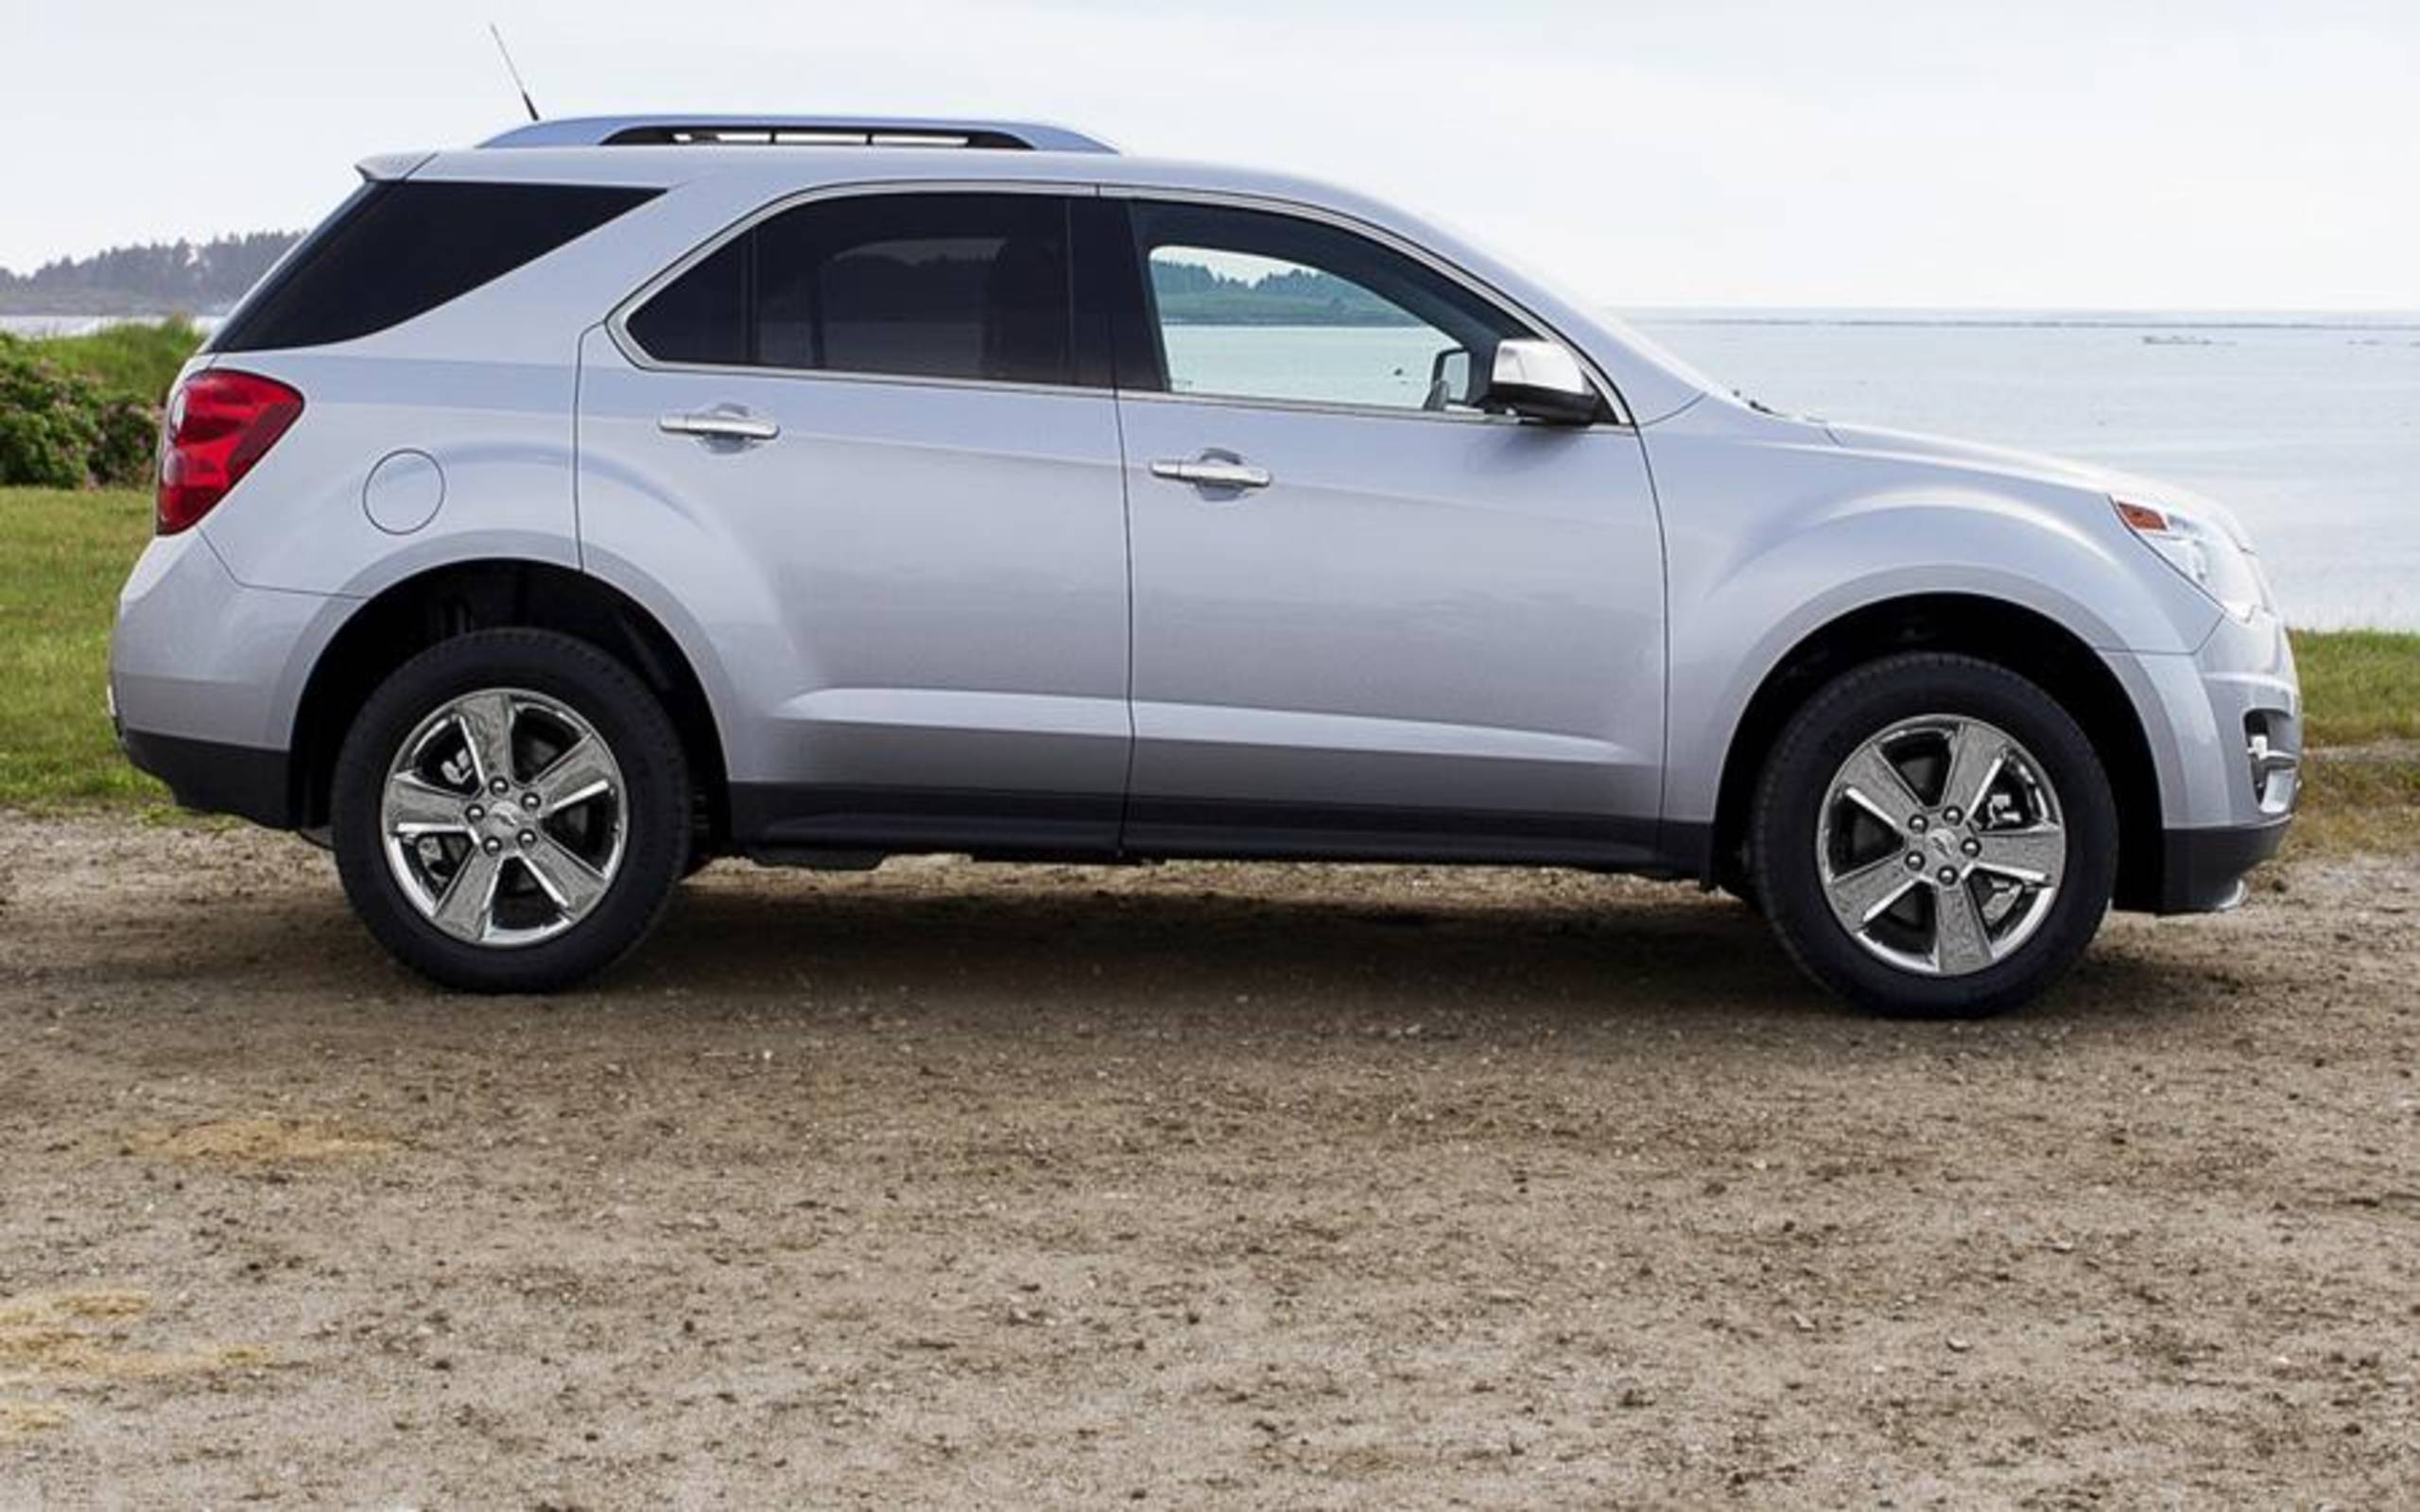 Gm To Reprogram Some Oil-Life Monitors   Get The Latest Car 2022 Chevy Traverse Oil, Owners Manual, Problems